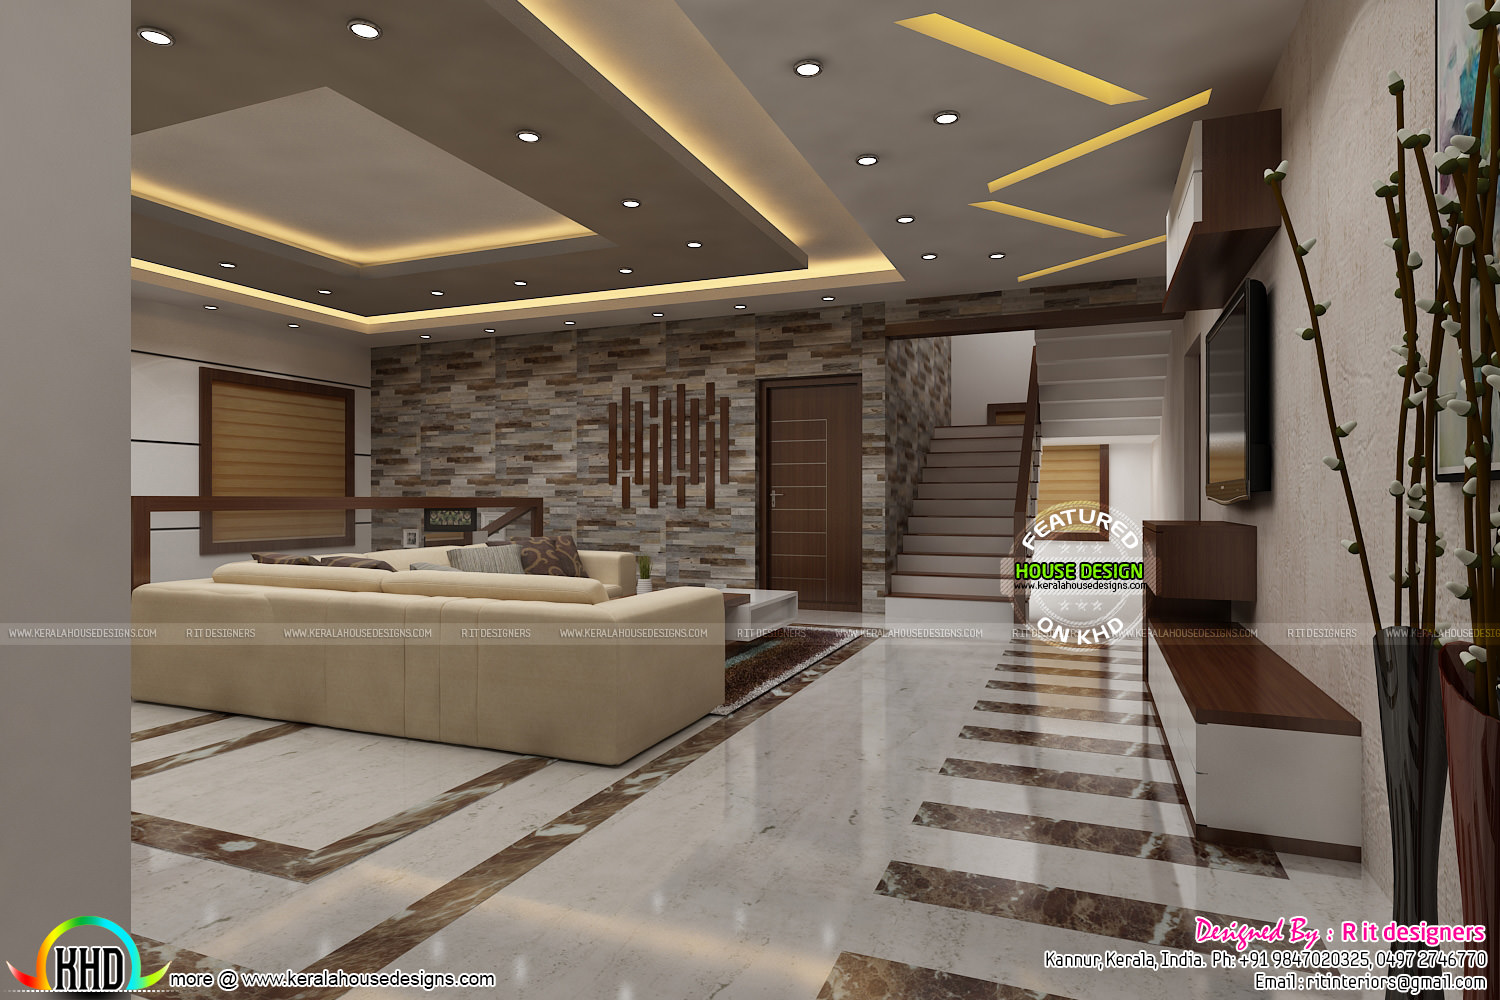 Most modern kerala living room interior kerala home for Kerala home interior designs photos